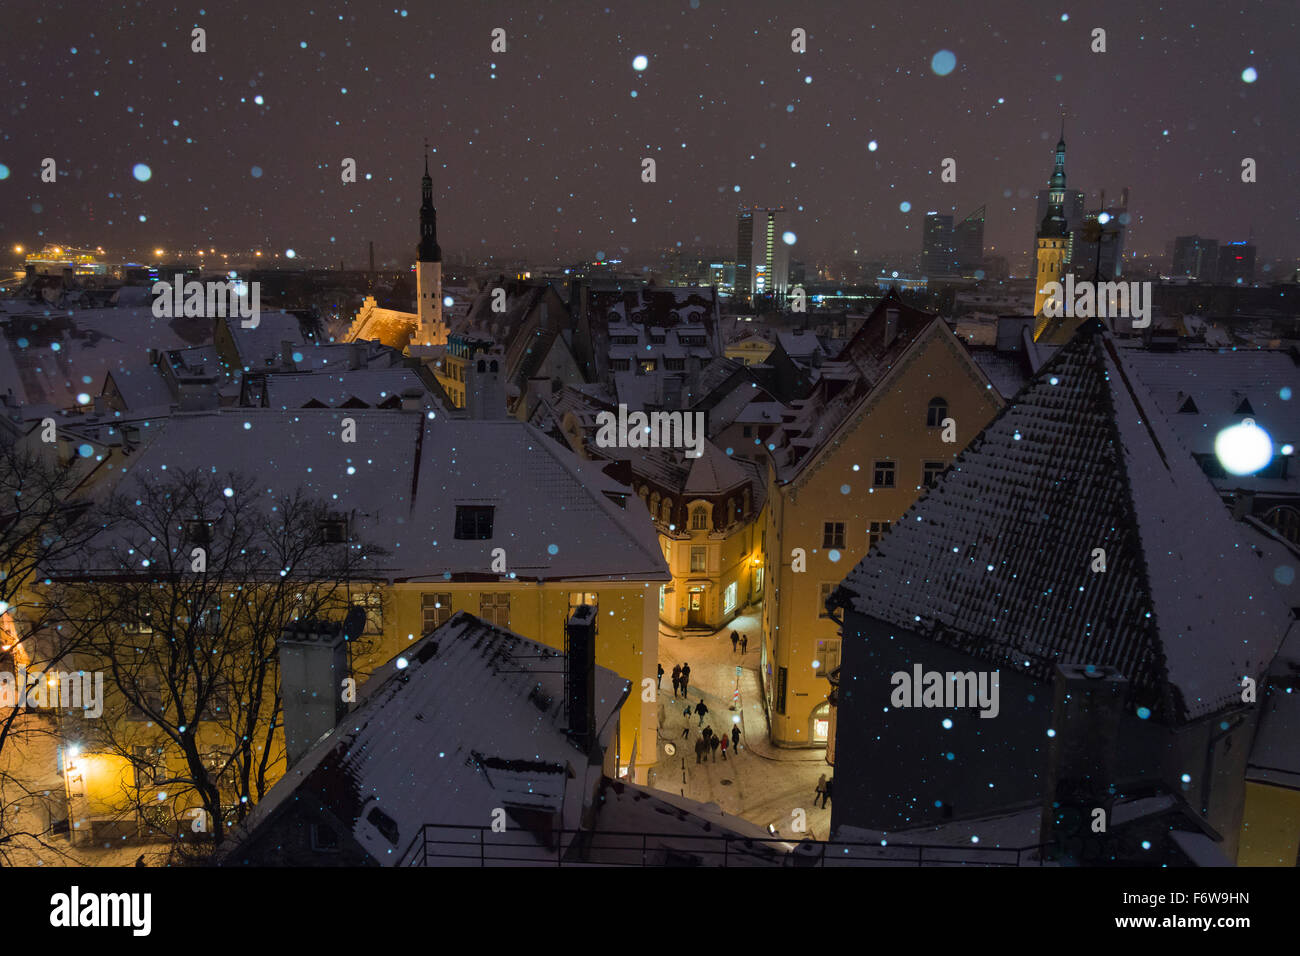 Old Town at Night in Snow fall from Kohtuotsa Platfrorm - Stock Image